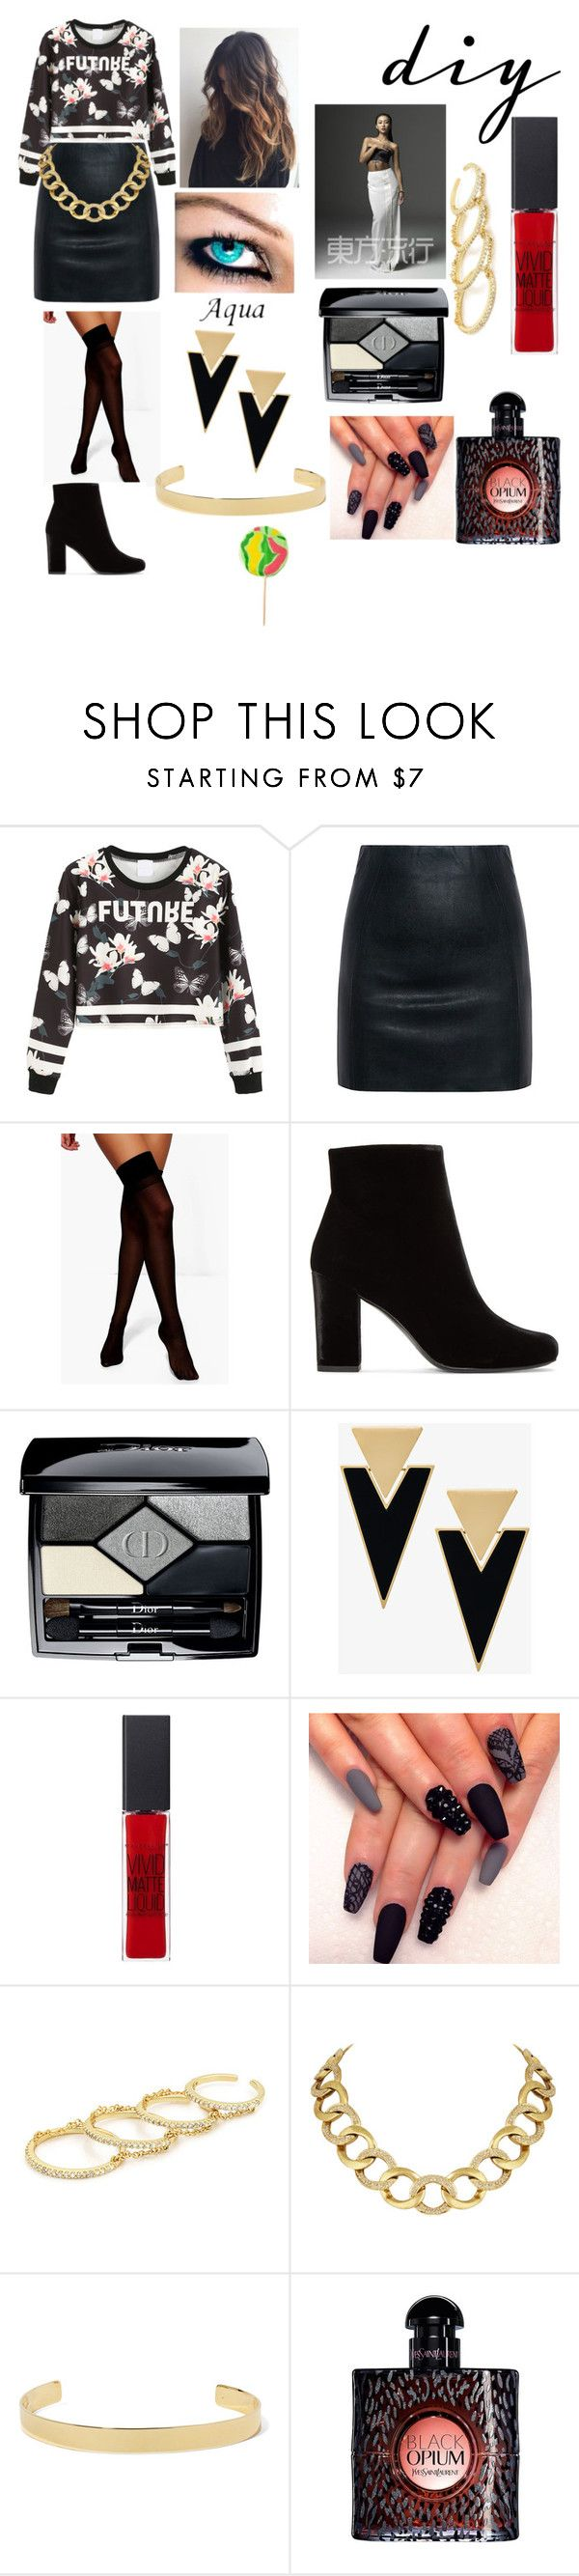 """Sistar-Shake it!🙌👩👩👩"" by sami-xii on Polyvore featuring McQ by Alexander McQueen, Boohoo, Yves Saint Laurent, Christian Dior, Maybelline, Fallon, House of Harlow 1960, Jennifer Fisher, halloweencostume and DIYHalloween"